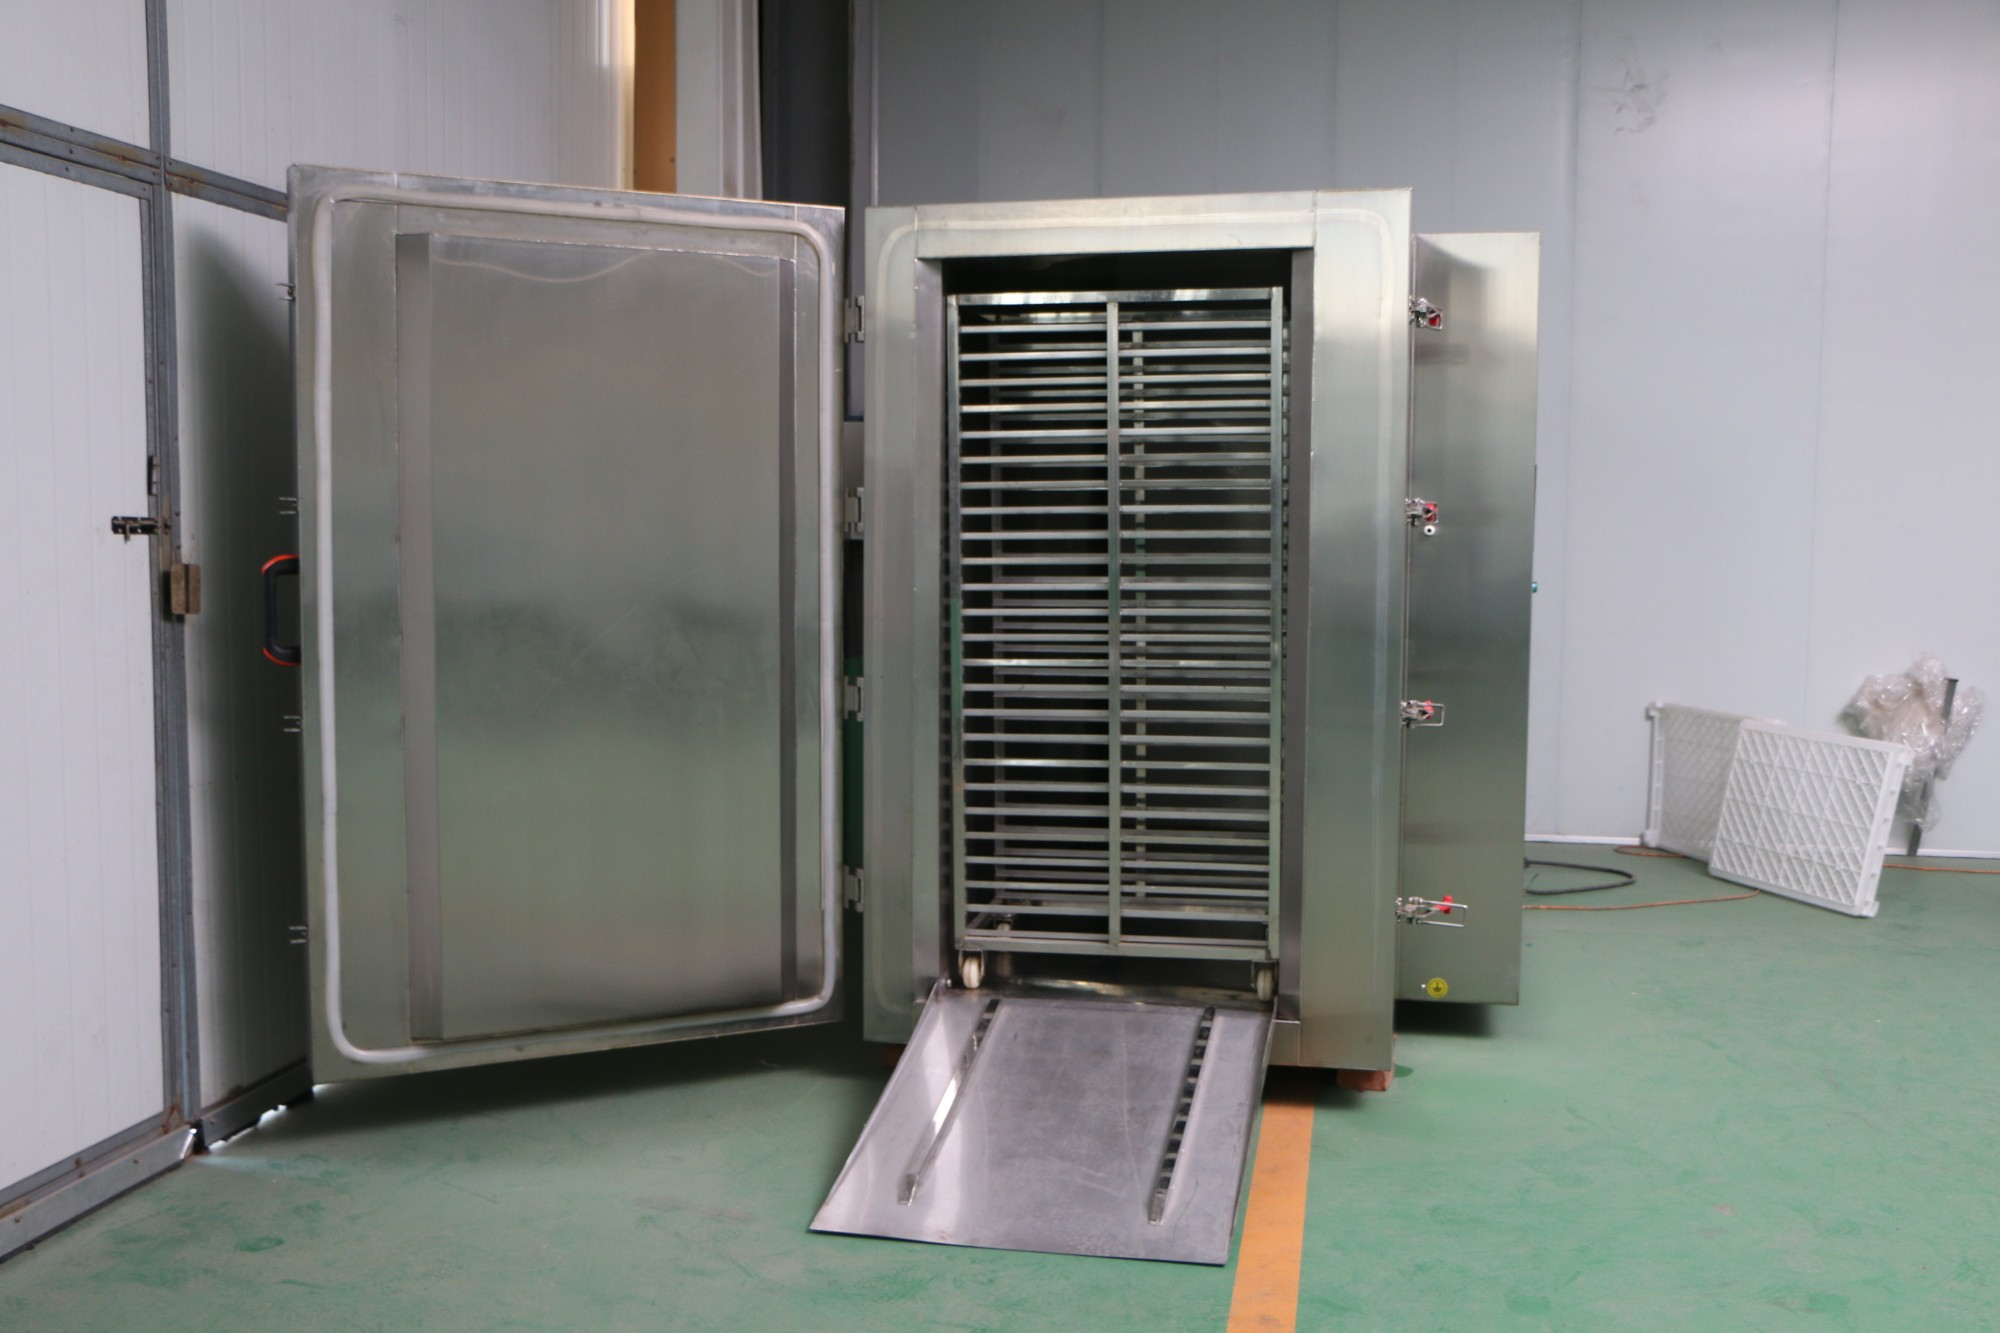 cabinet freezer with tray carts Manufacturers, cabinet freezer with tray carts Factory, Supply cabinet freezer with tray carts